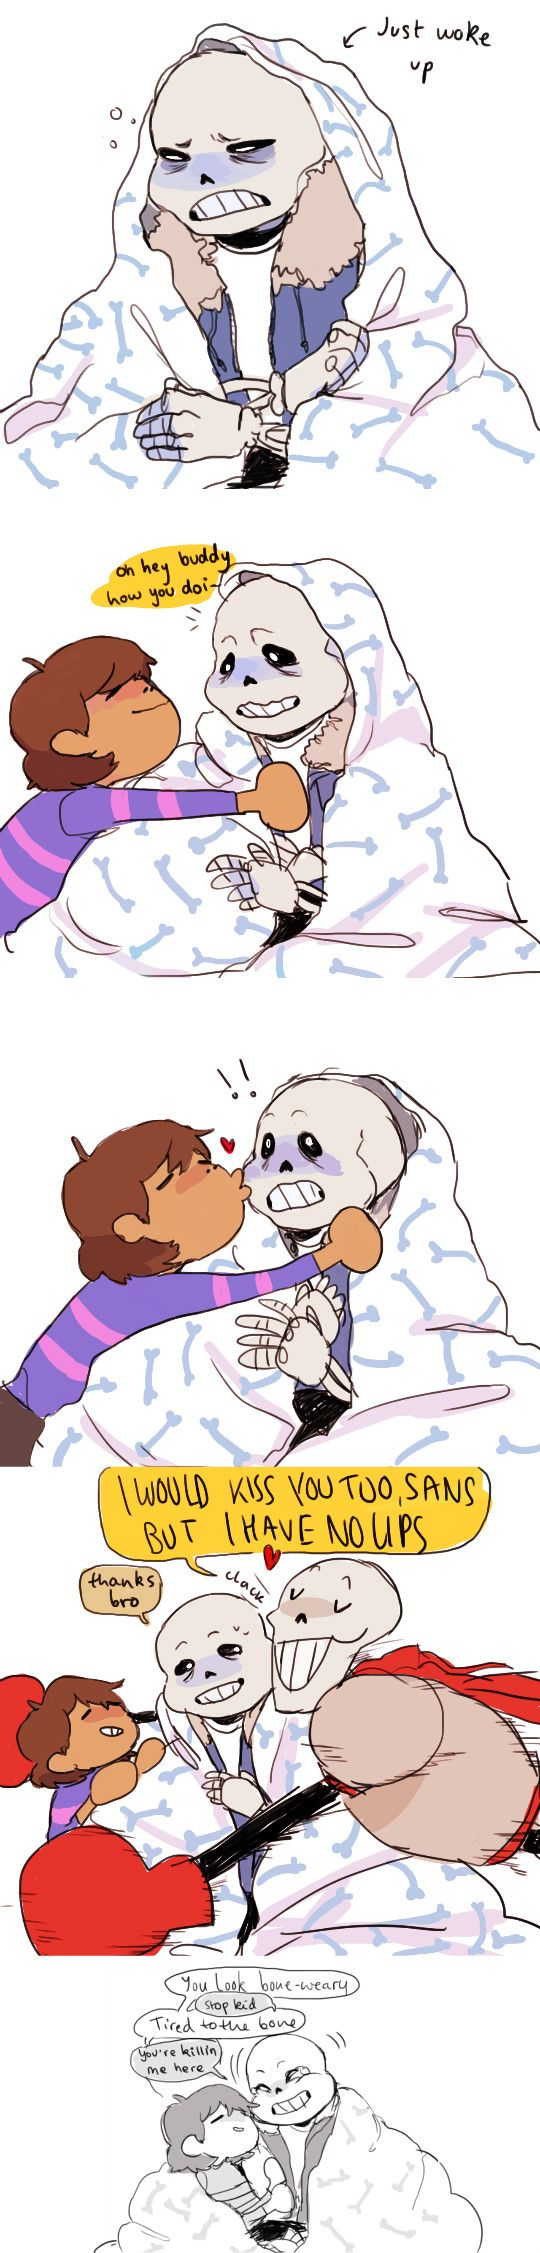 Sans, Frisk, and Papyrus - comic - http://dannyqhantom.tumblr.com/post/132748387510/sans-is-not-a-morning-personskeleton